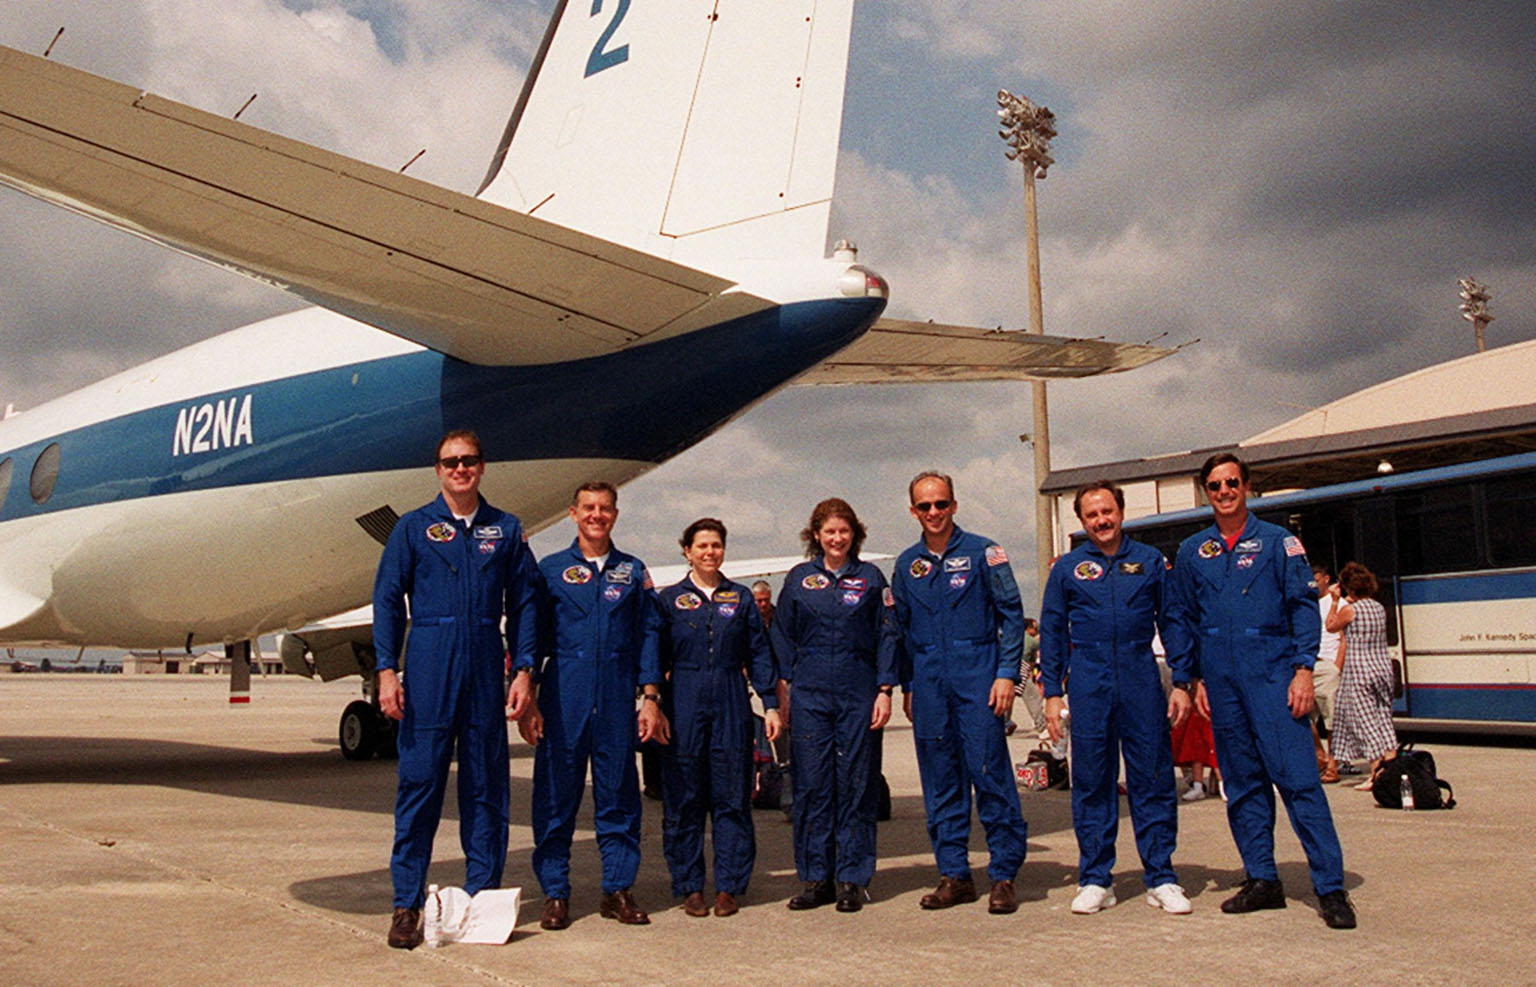 The STS-101 crew pose one more time before departing for Houston from Patrick Air Force Base. From left are Commander James D. Halsell Jr., Mission Specialists James S. Voss, Mary Ellen Weber, Susan J. Helms, Jeffrey N. Williams, Yury Usachev of Russia, and Pilot Scott ?Doc? Horowitz. After landing at 2:20 a.m. EDT May 29, the crew and their families enjoyed the Memorial Day holiday in Florida. The crew returned from the third flight to the International Space Station where they made repairs, transferred cargo and completed a space walk to install and connect several pieces of equipment on the outside of the Space Station